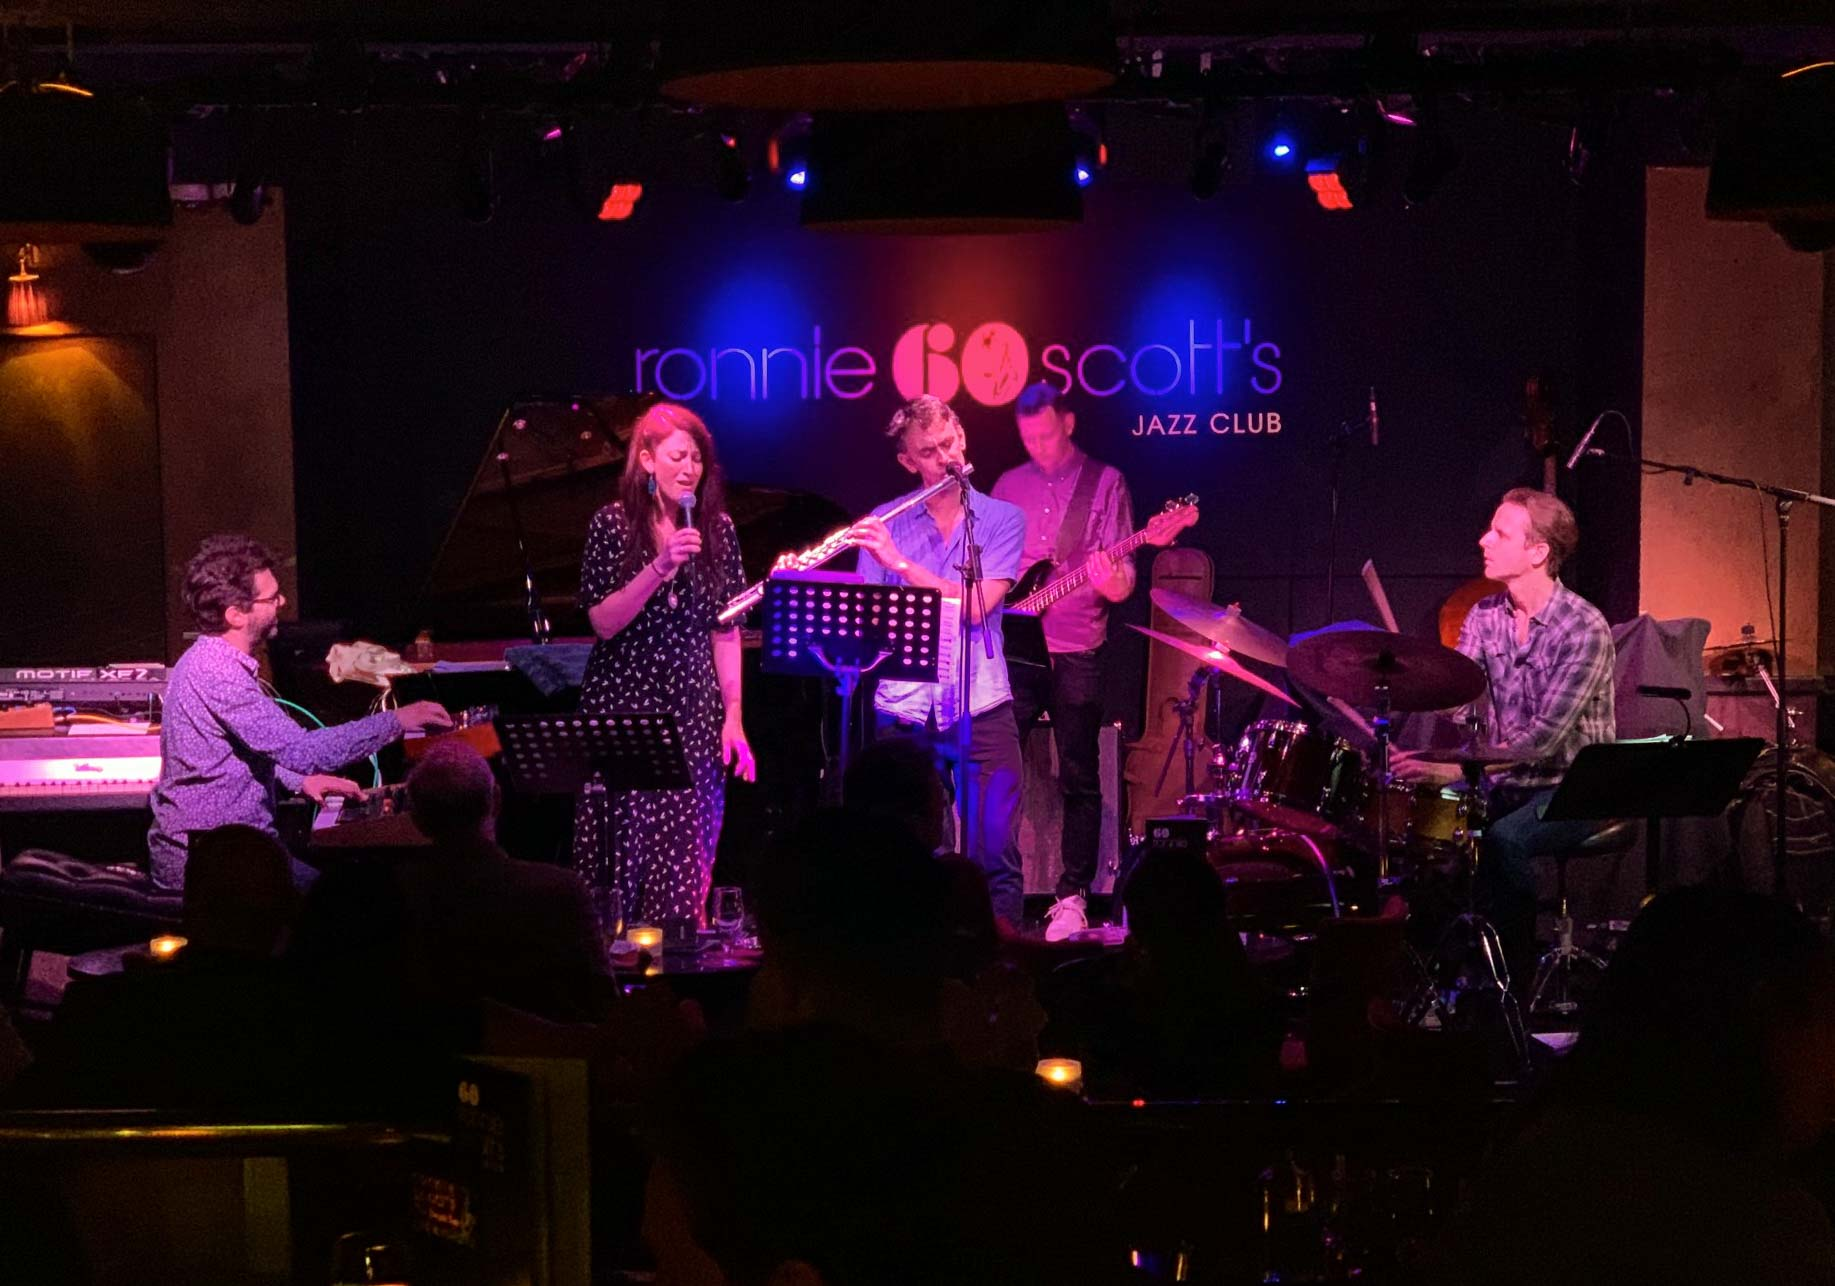 Album launch @ Ronnie Scotts